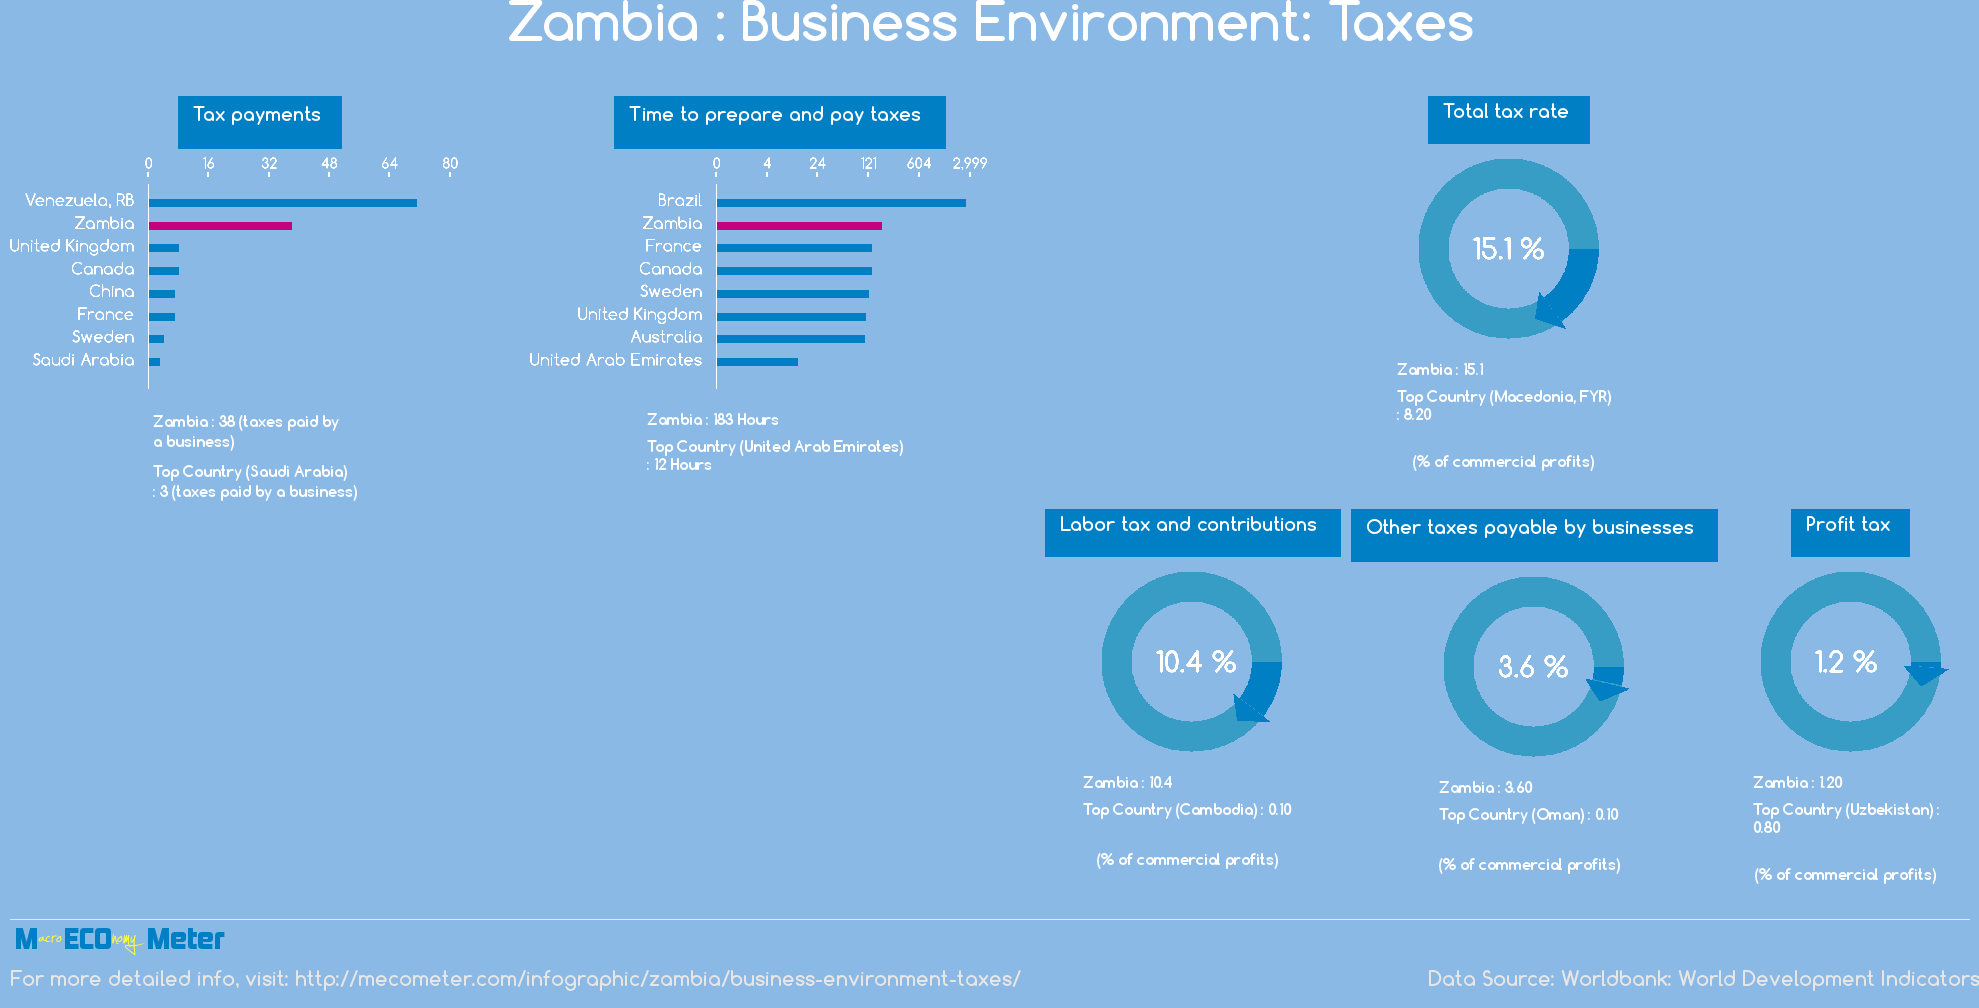 Zambia : Business Environment: Taxes